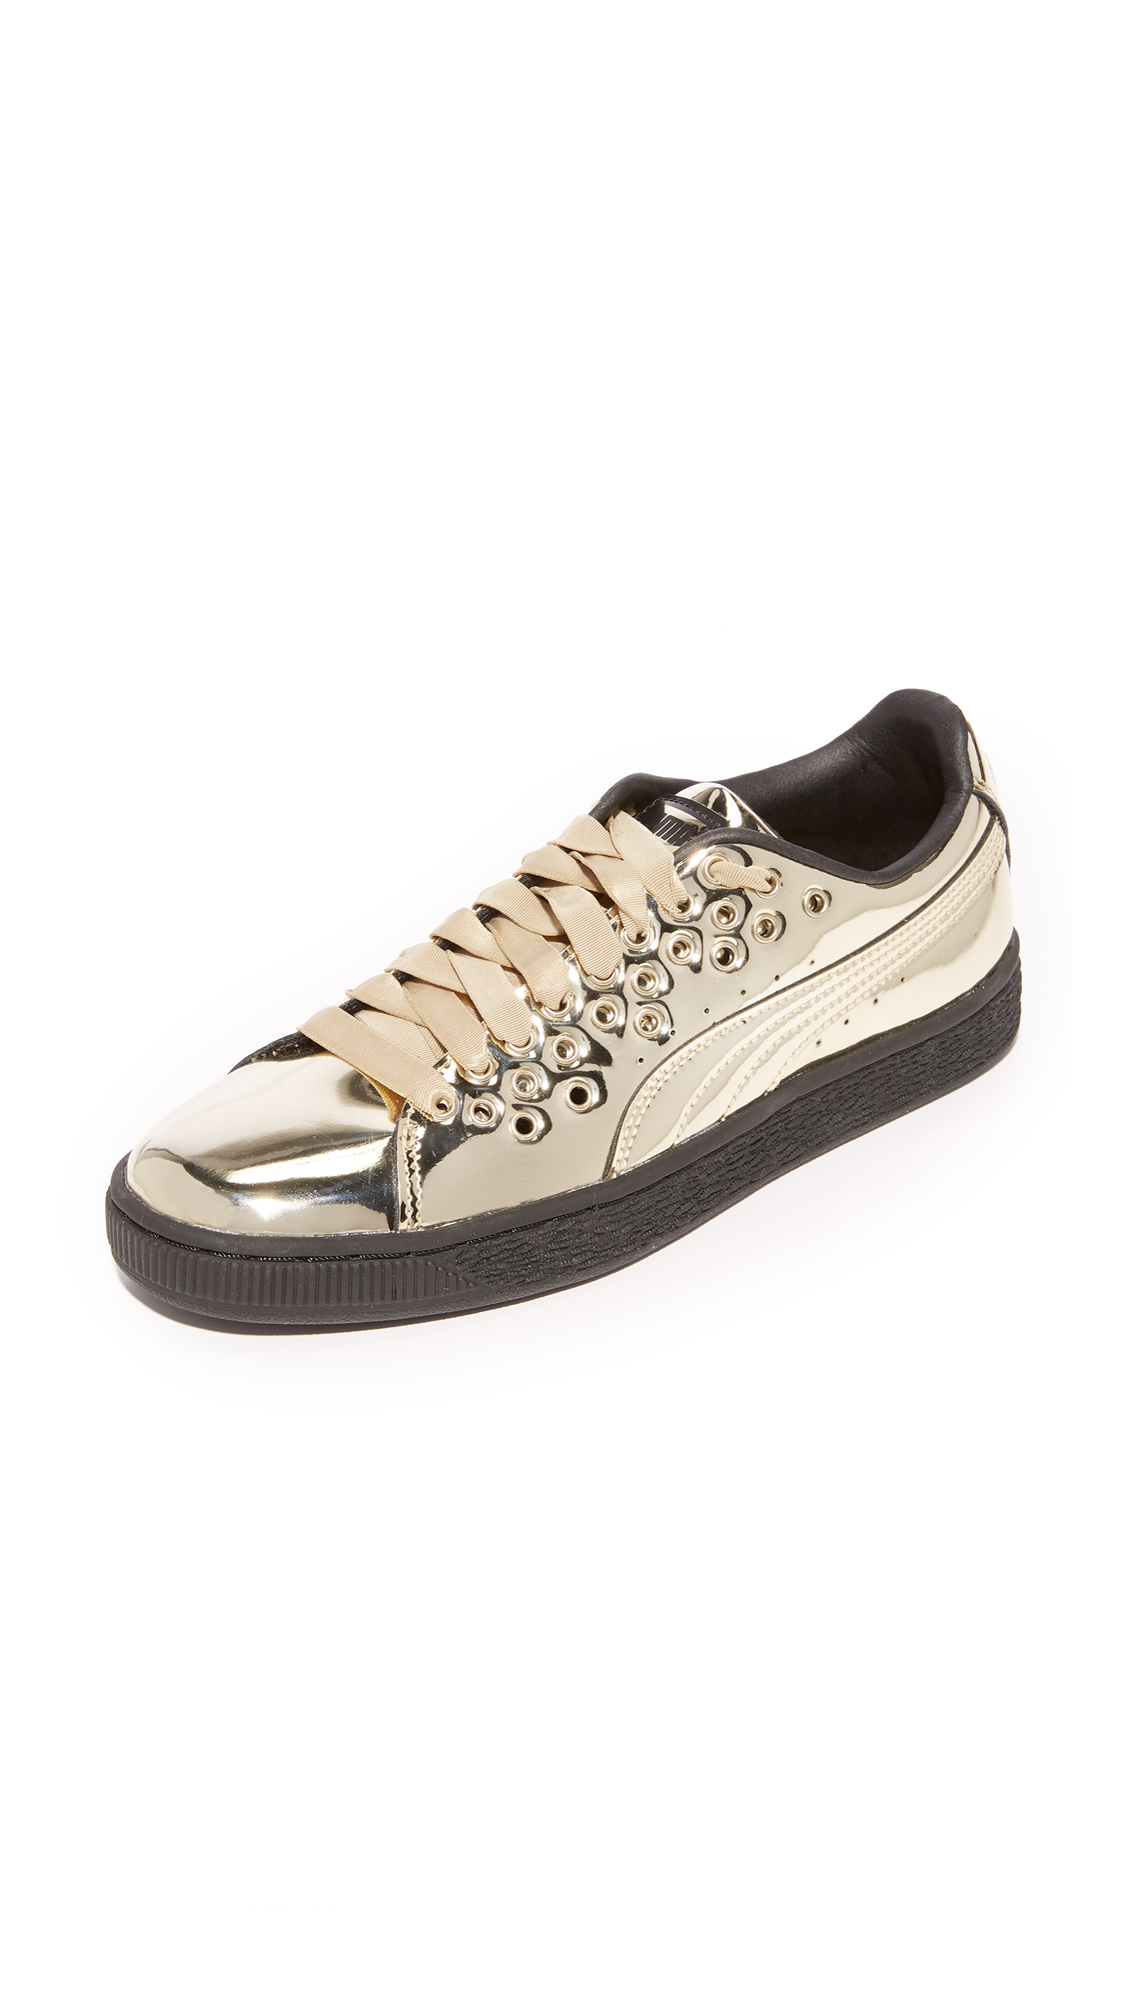 PUMA Basket XL Lace Select Sneakers - Gold/Gold